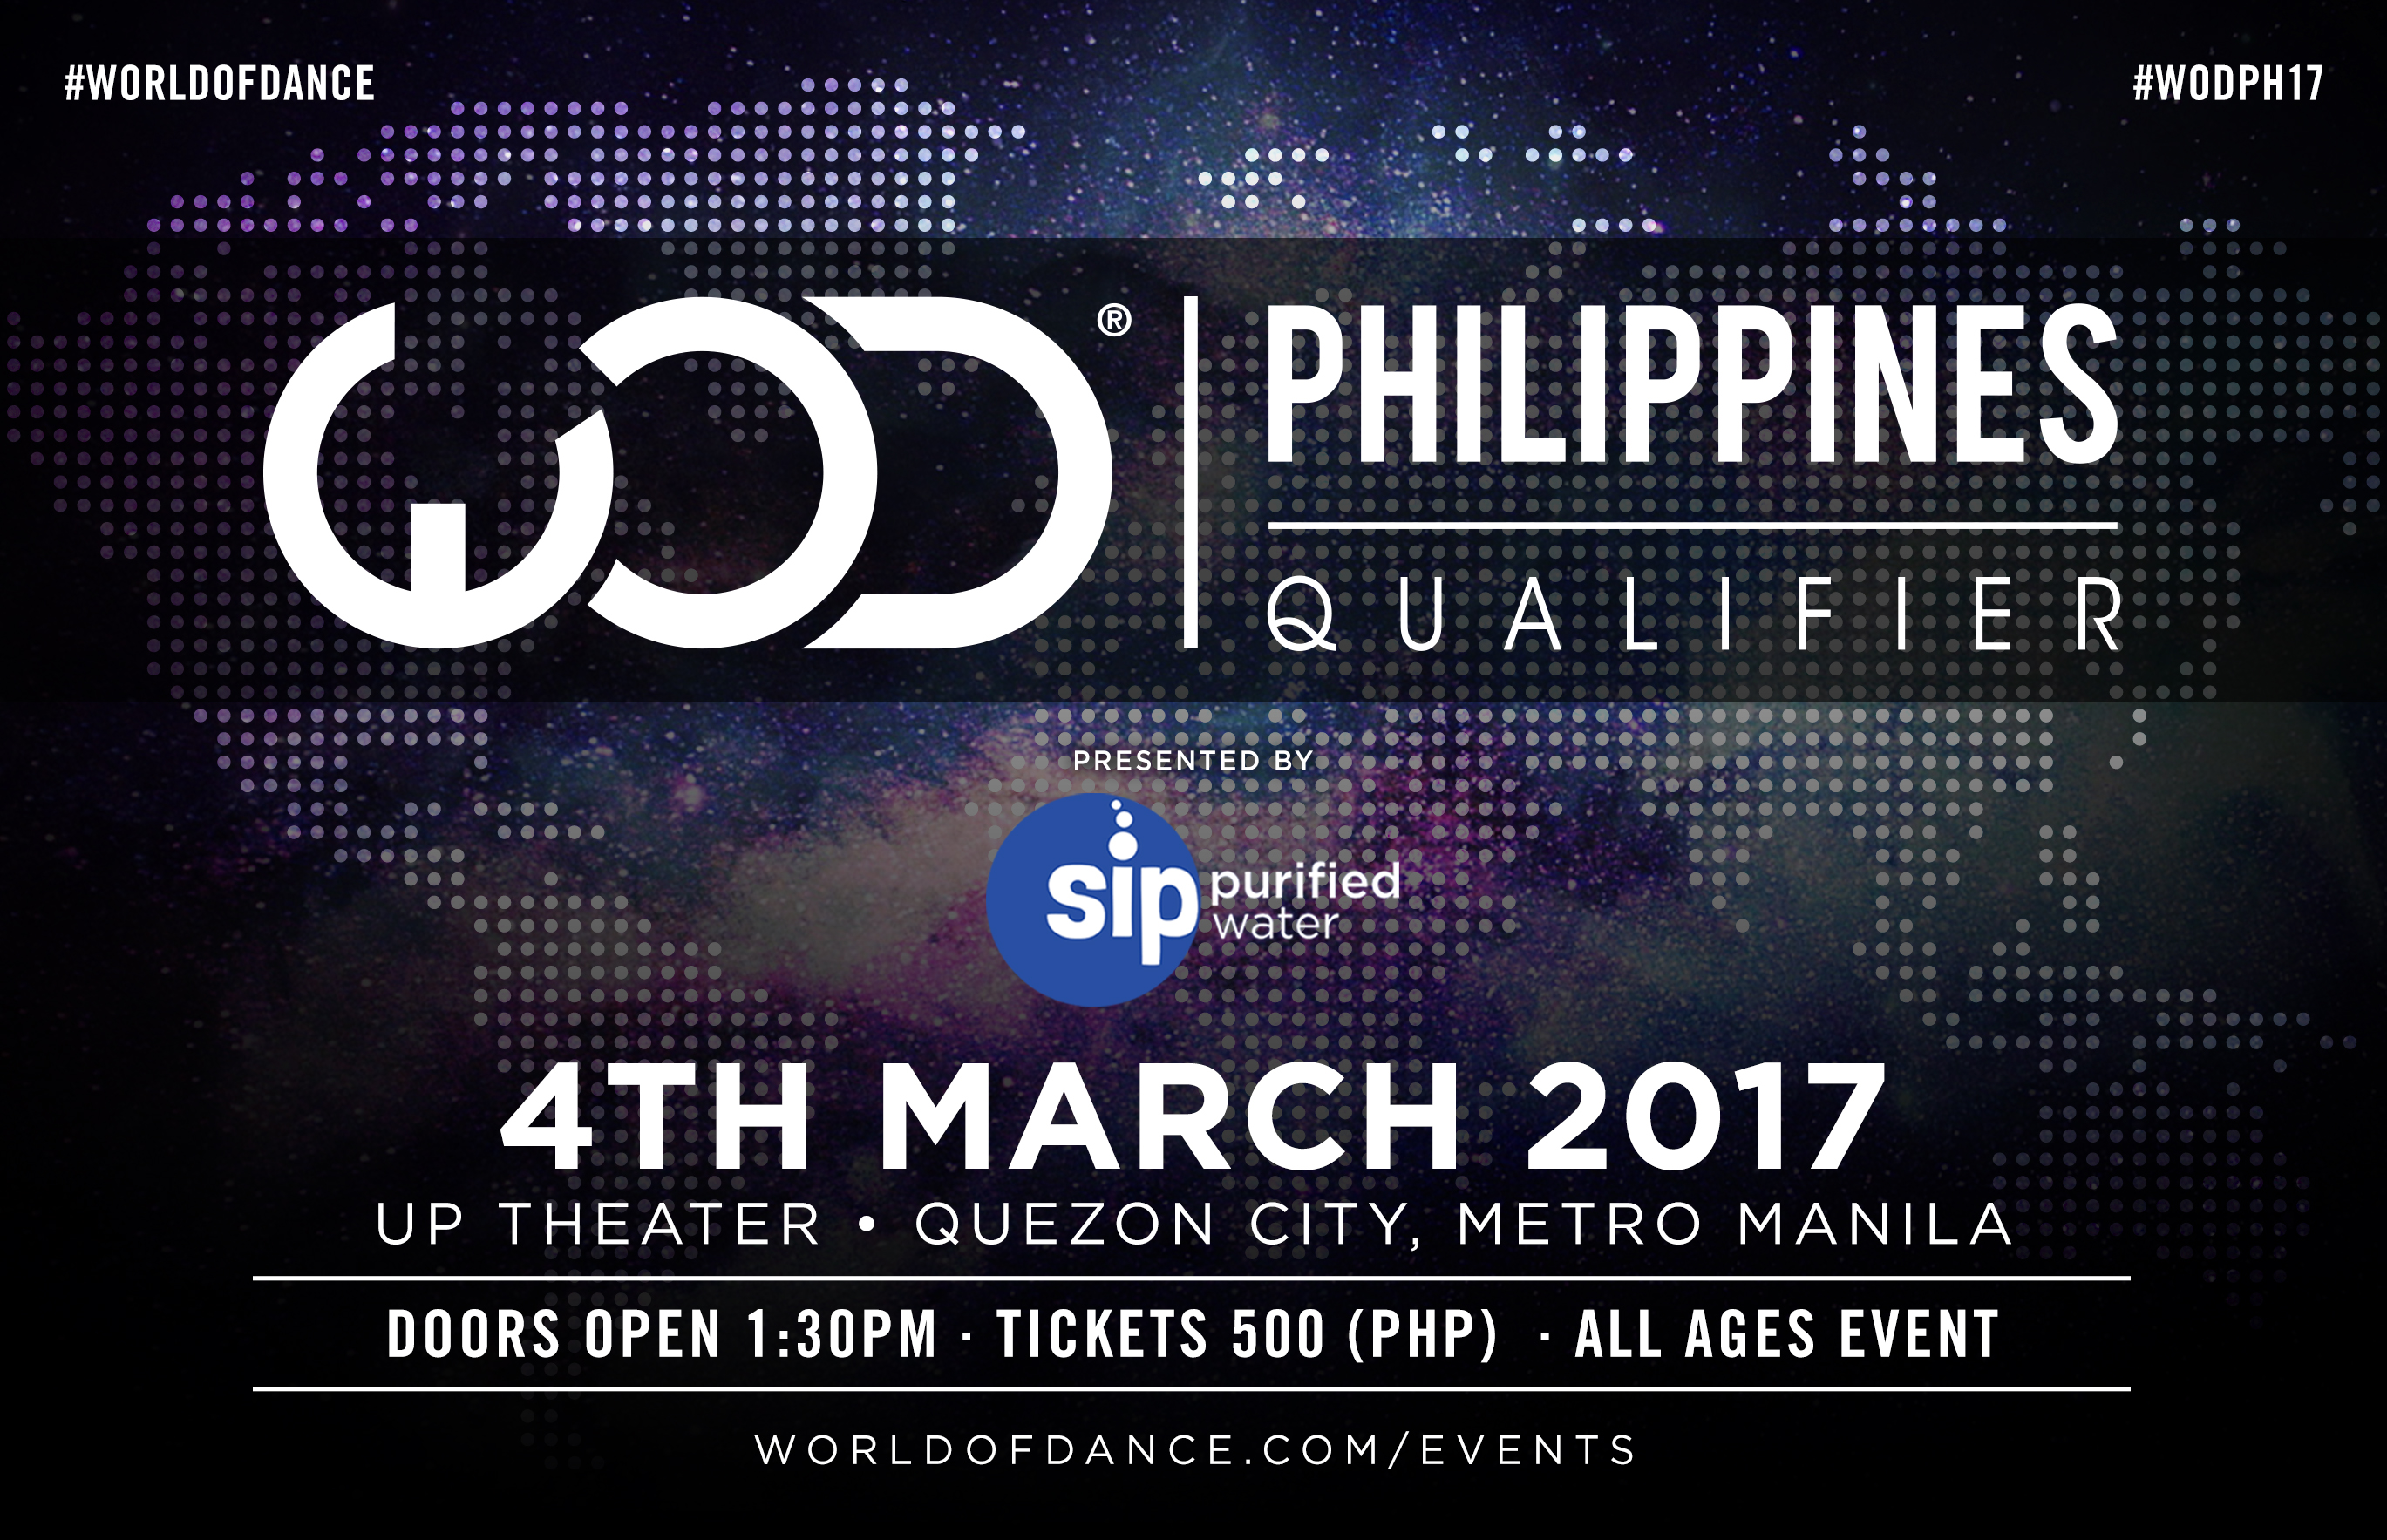 Are You Ready For the World Of Dance Philippine Qualifiers?